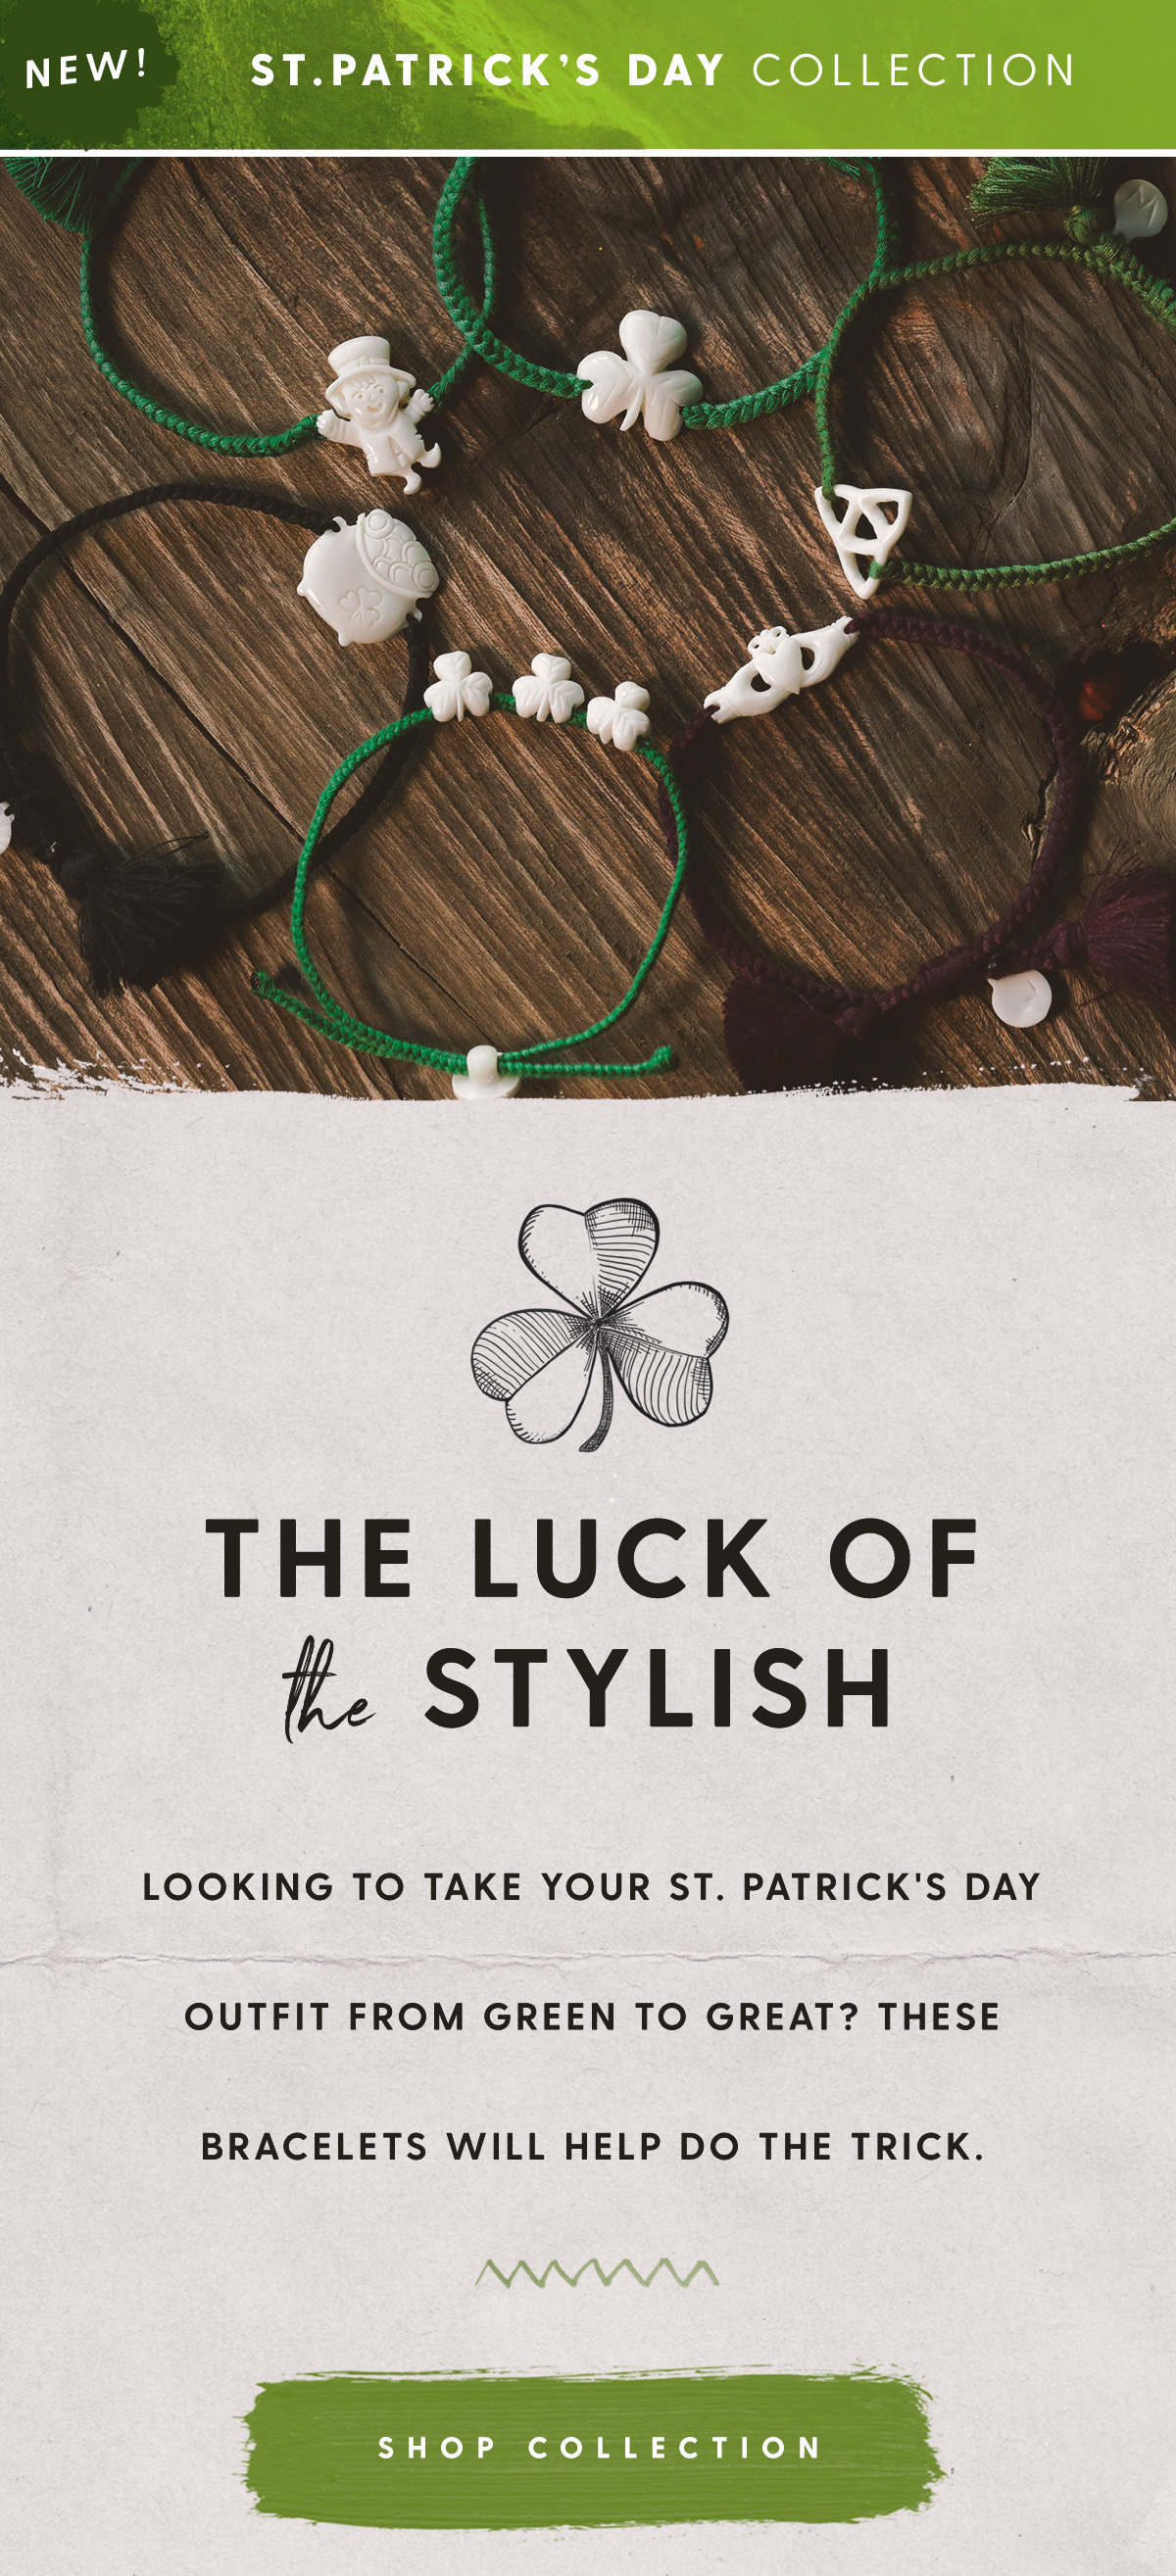 New! St. Patrick's Day Collection. The Luck of the Stylish. Looking to take your St. Patrick's Day outfit from green to great? These bracelets will help do the trick. Shop Collection